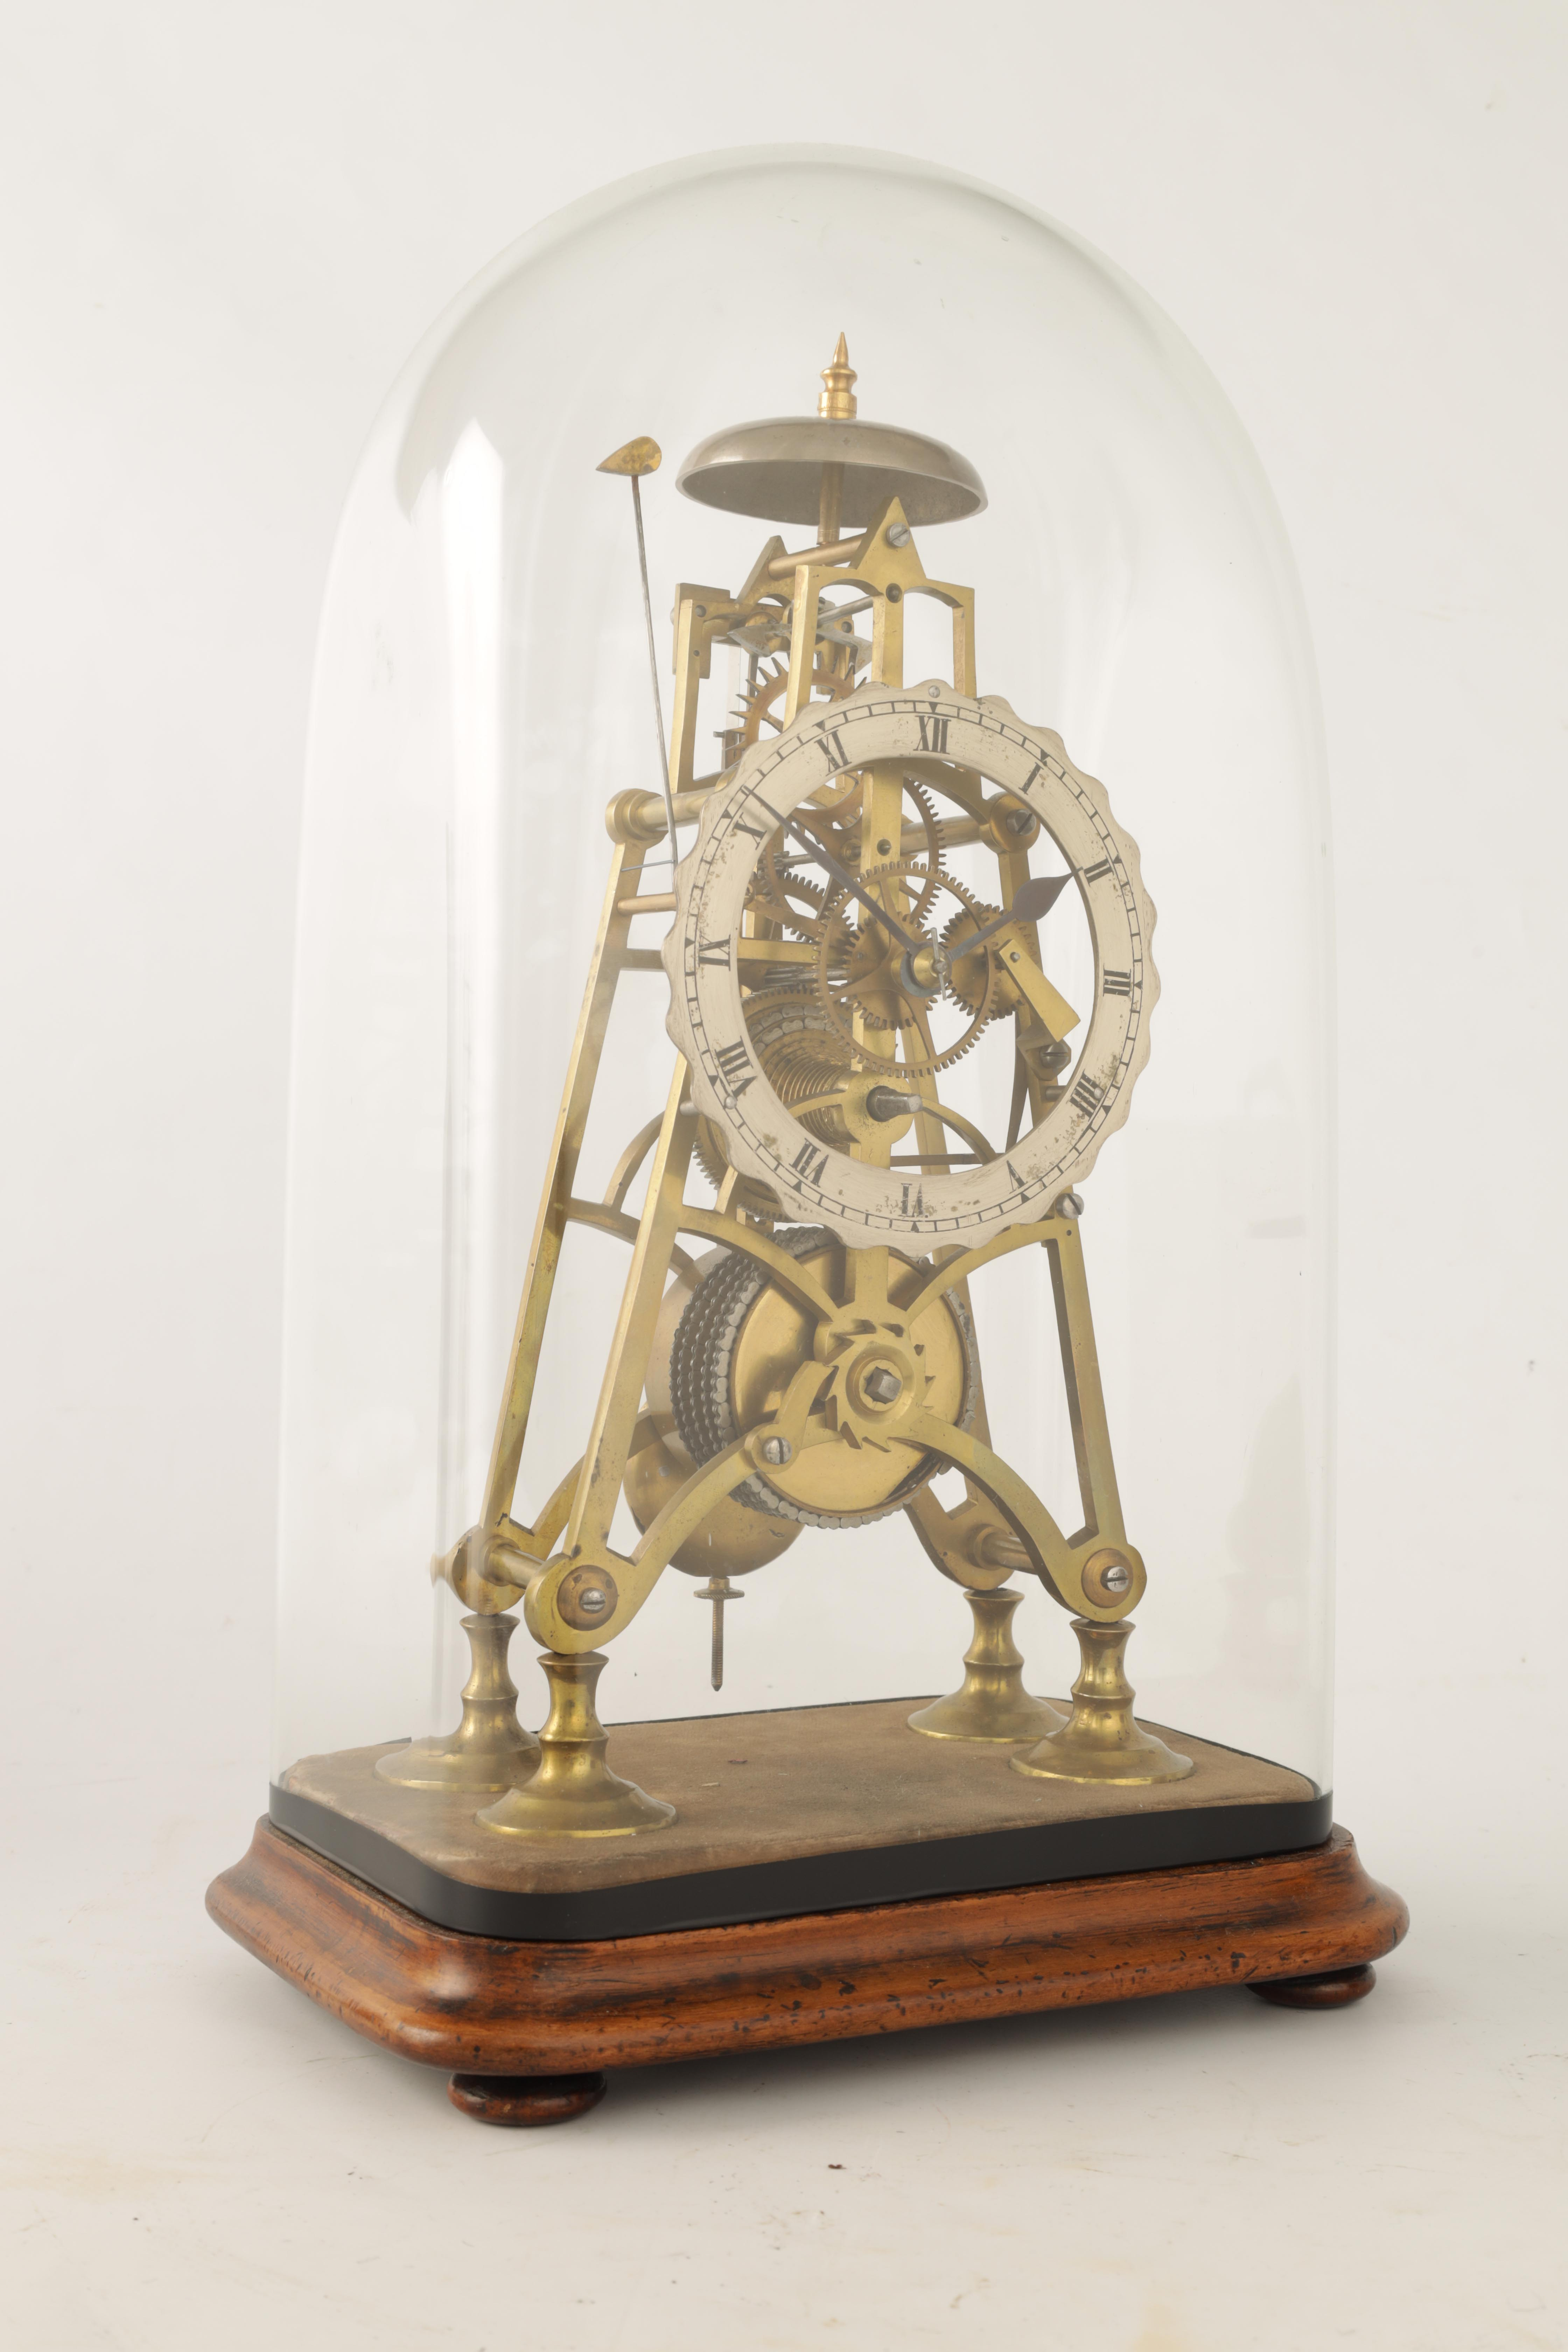 A 19TH CENTURY 8-DAY FUSEE TIMEPIECE SKELETON CLOCK with passing hour bell strike, tapering plates - Image 2 of 6